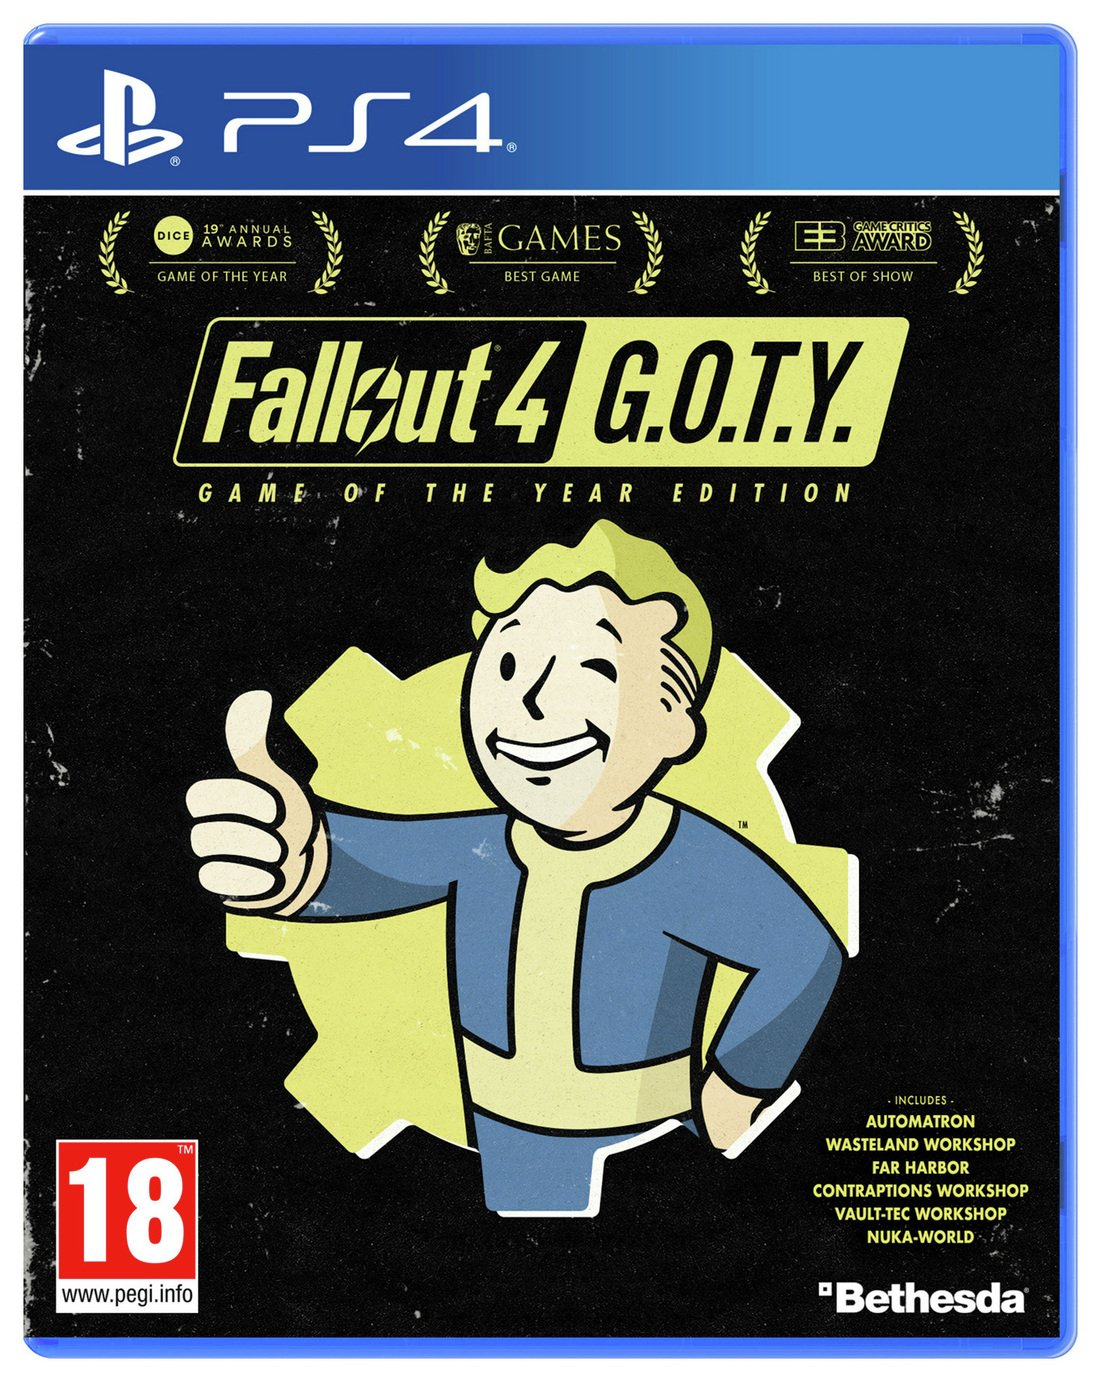 Fallout 4 GOTY Edition PS4 Game from Fallout